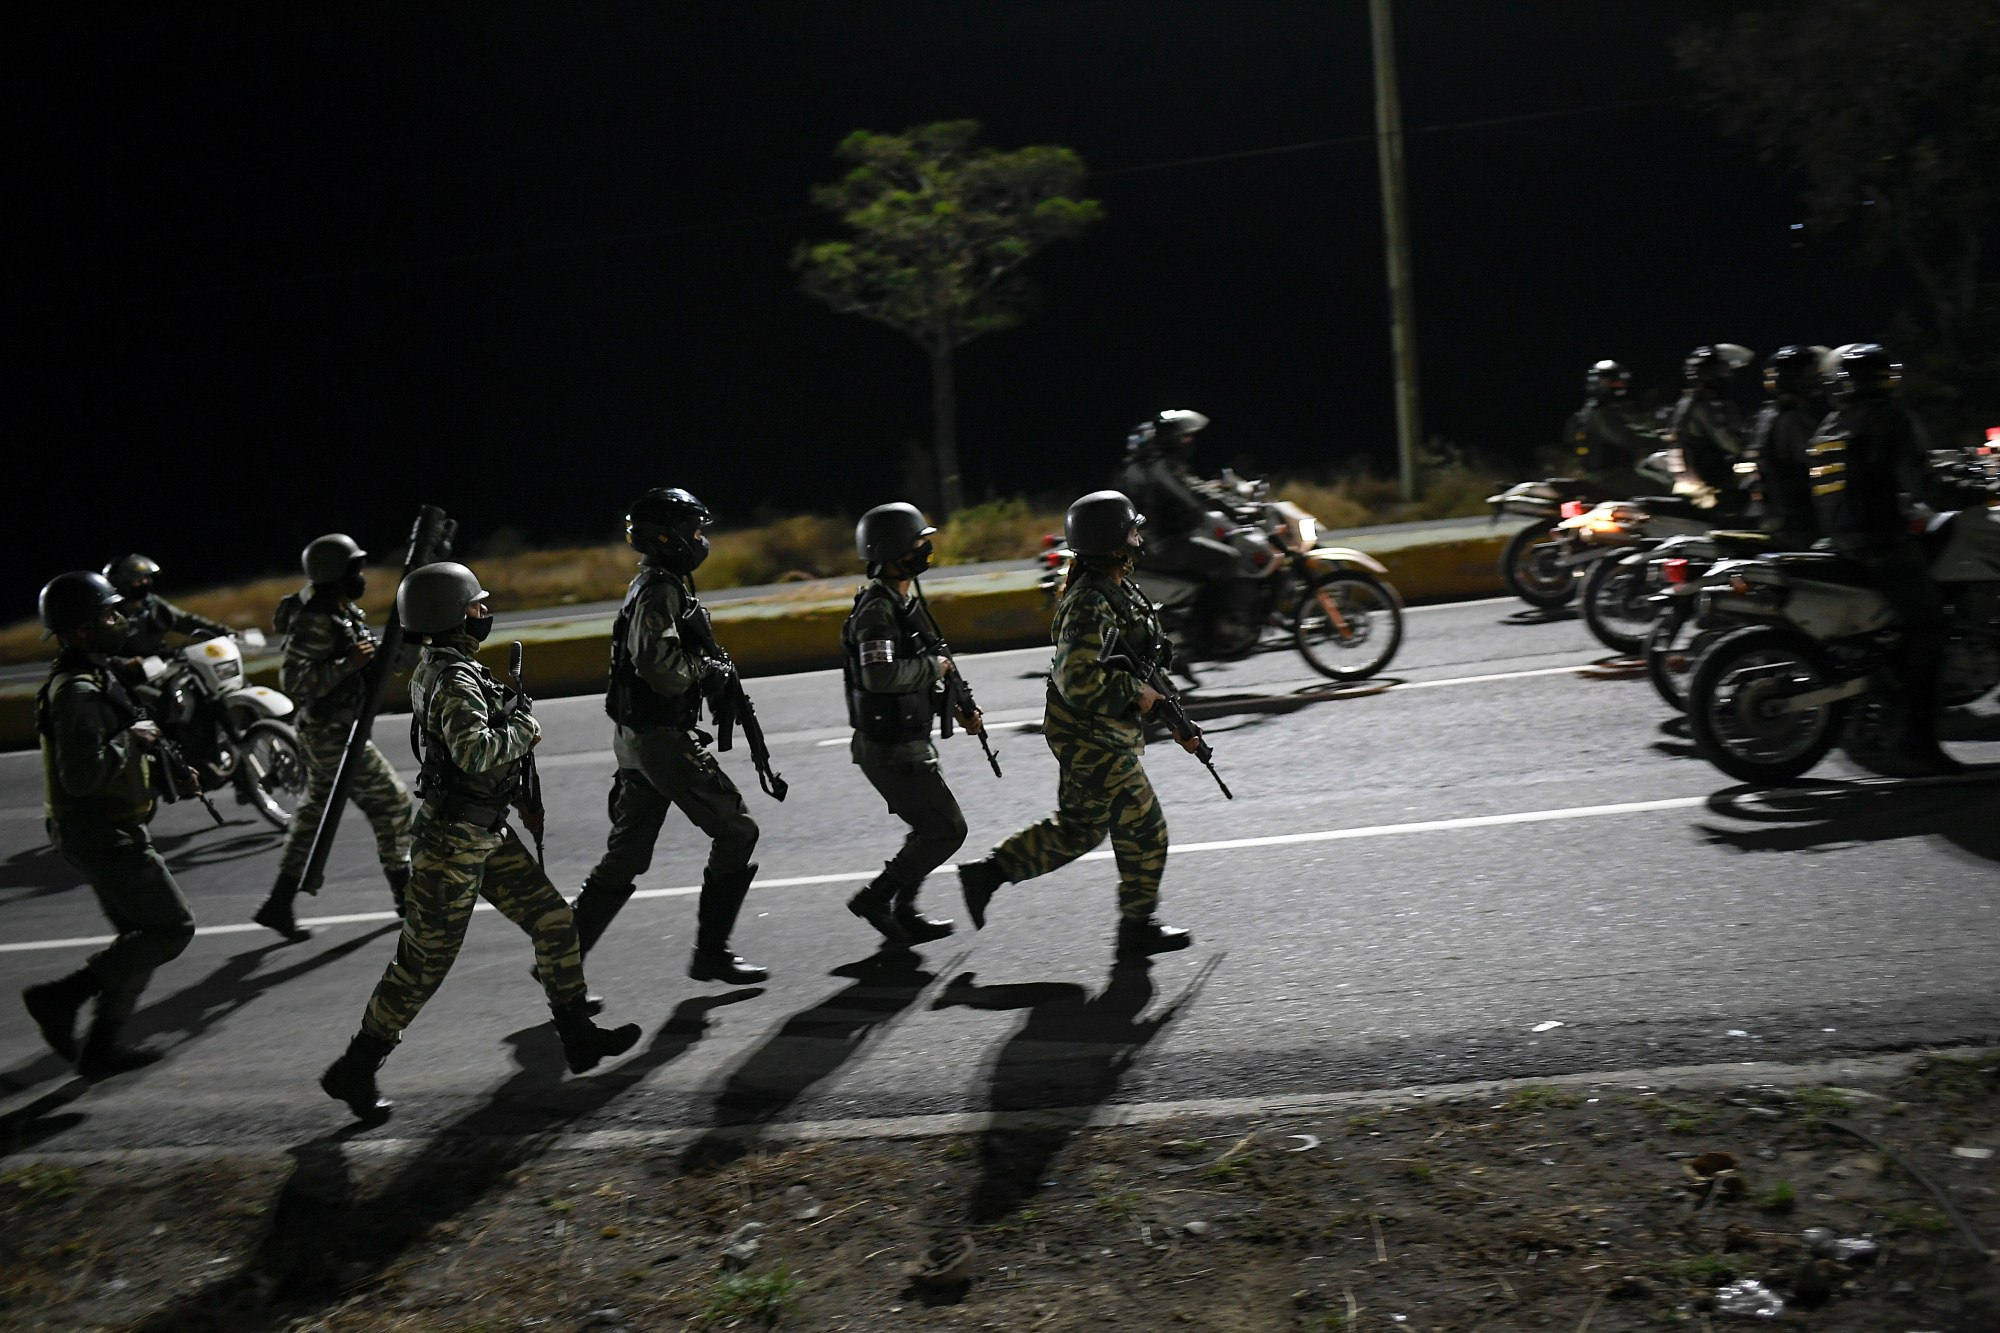 Security forces take part in a military drill to mark the eighth death anniversary of President Hugo Chavez in Caracas, Venezuela on March 5, 2021. (Matias Delacroix/Associated Press)